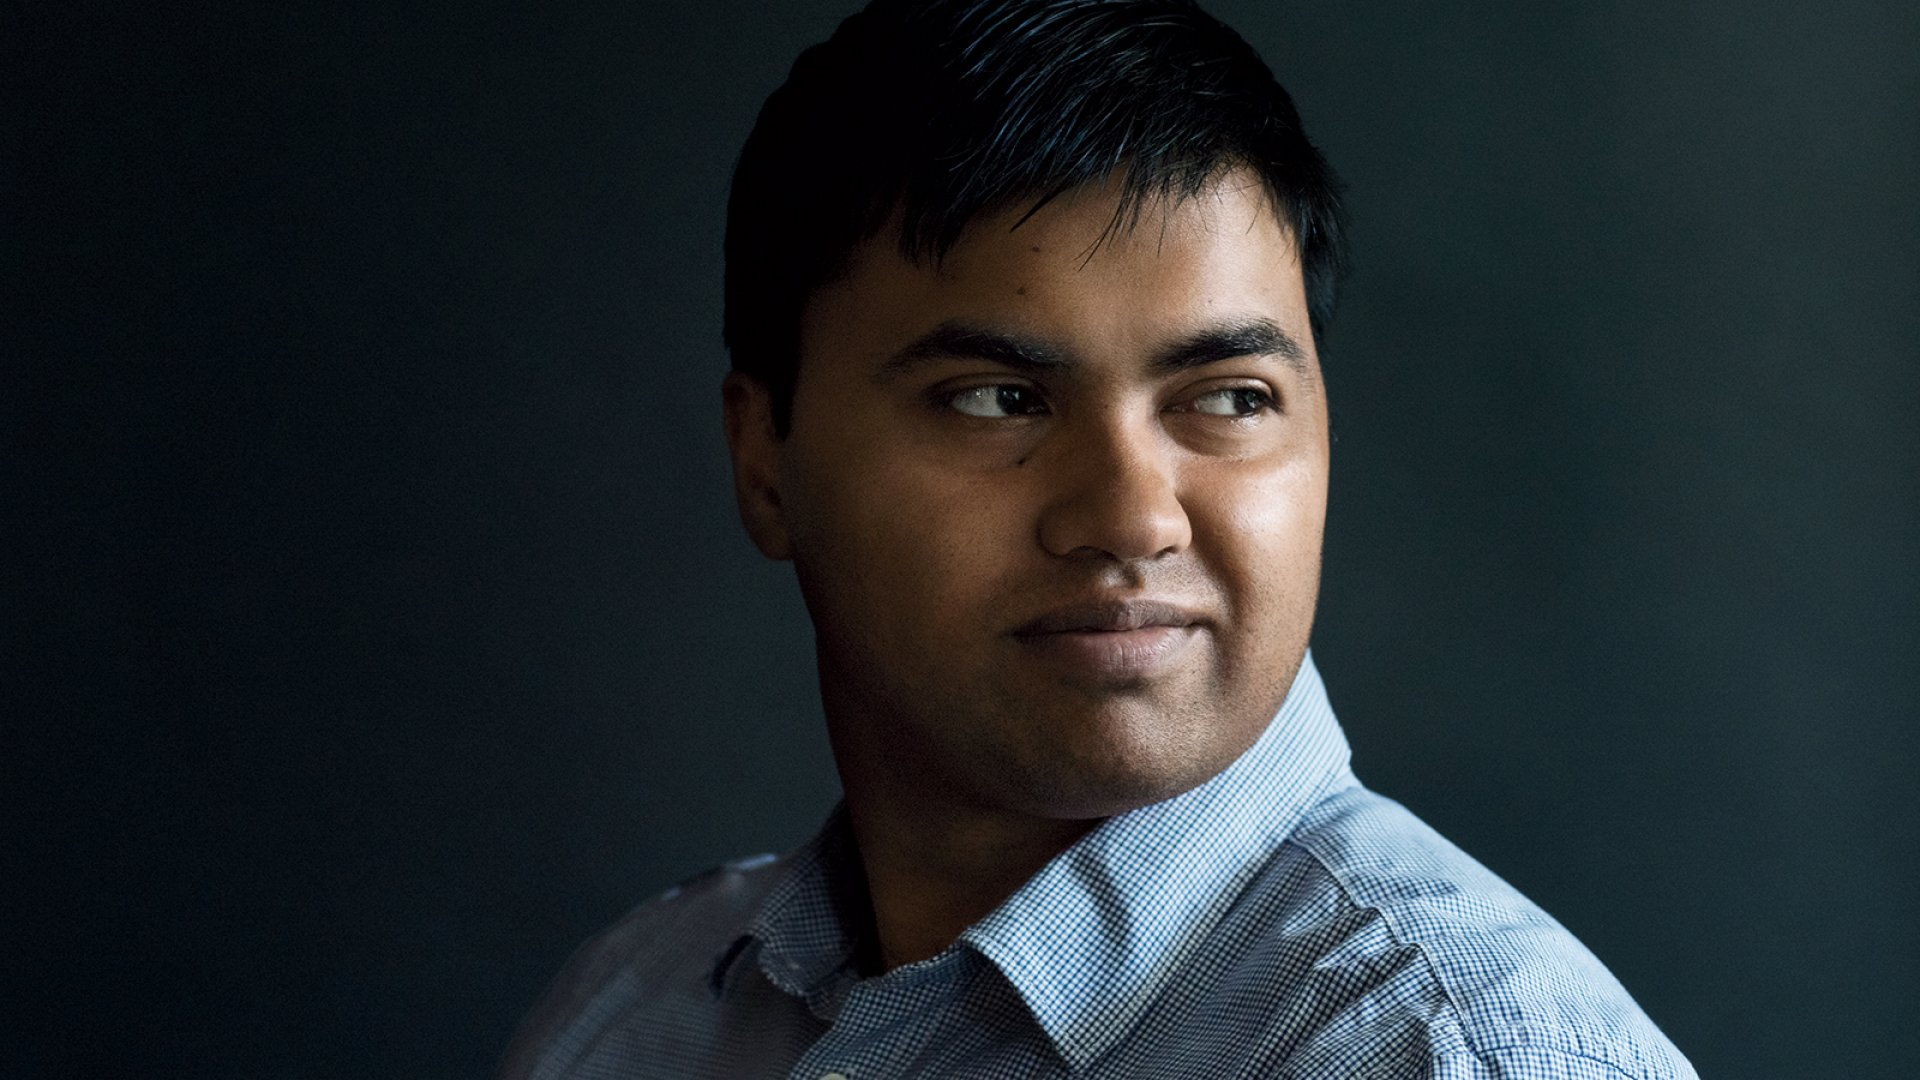 """As CEO, I sometimes wonder whether we are growing fast enough,"" says Bhavin Parikh, who was thrust into leadership as his co-founder fought a rare, and eventually fatal cancer. ""I know if Hansoo were here, he would be pushing us even more."""